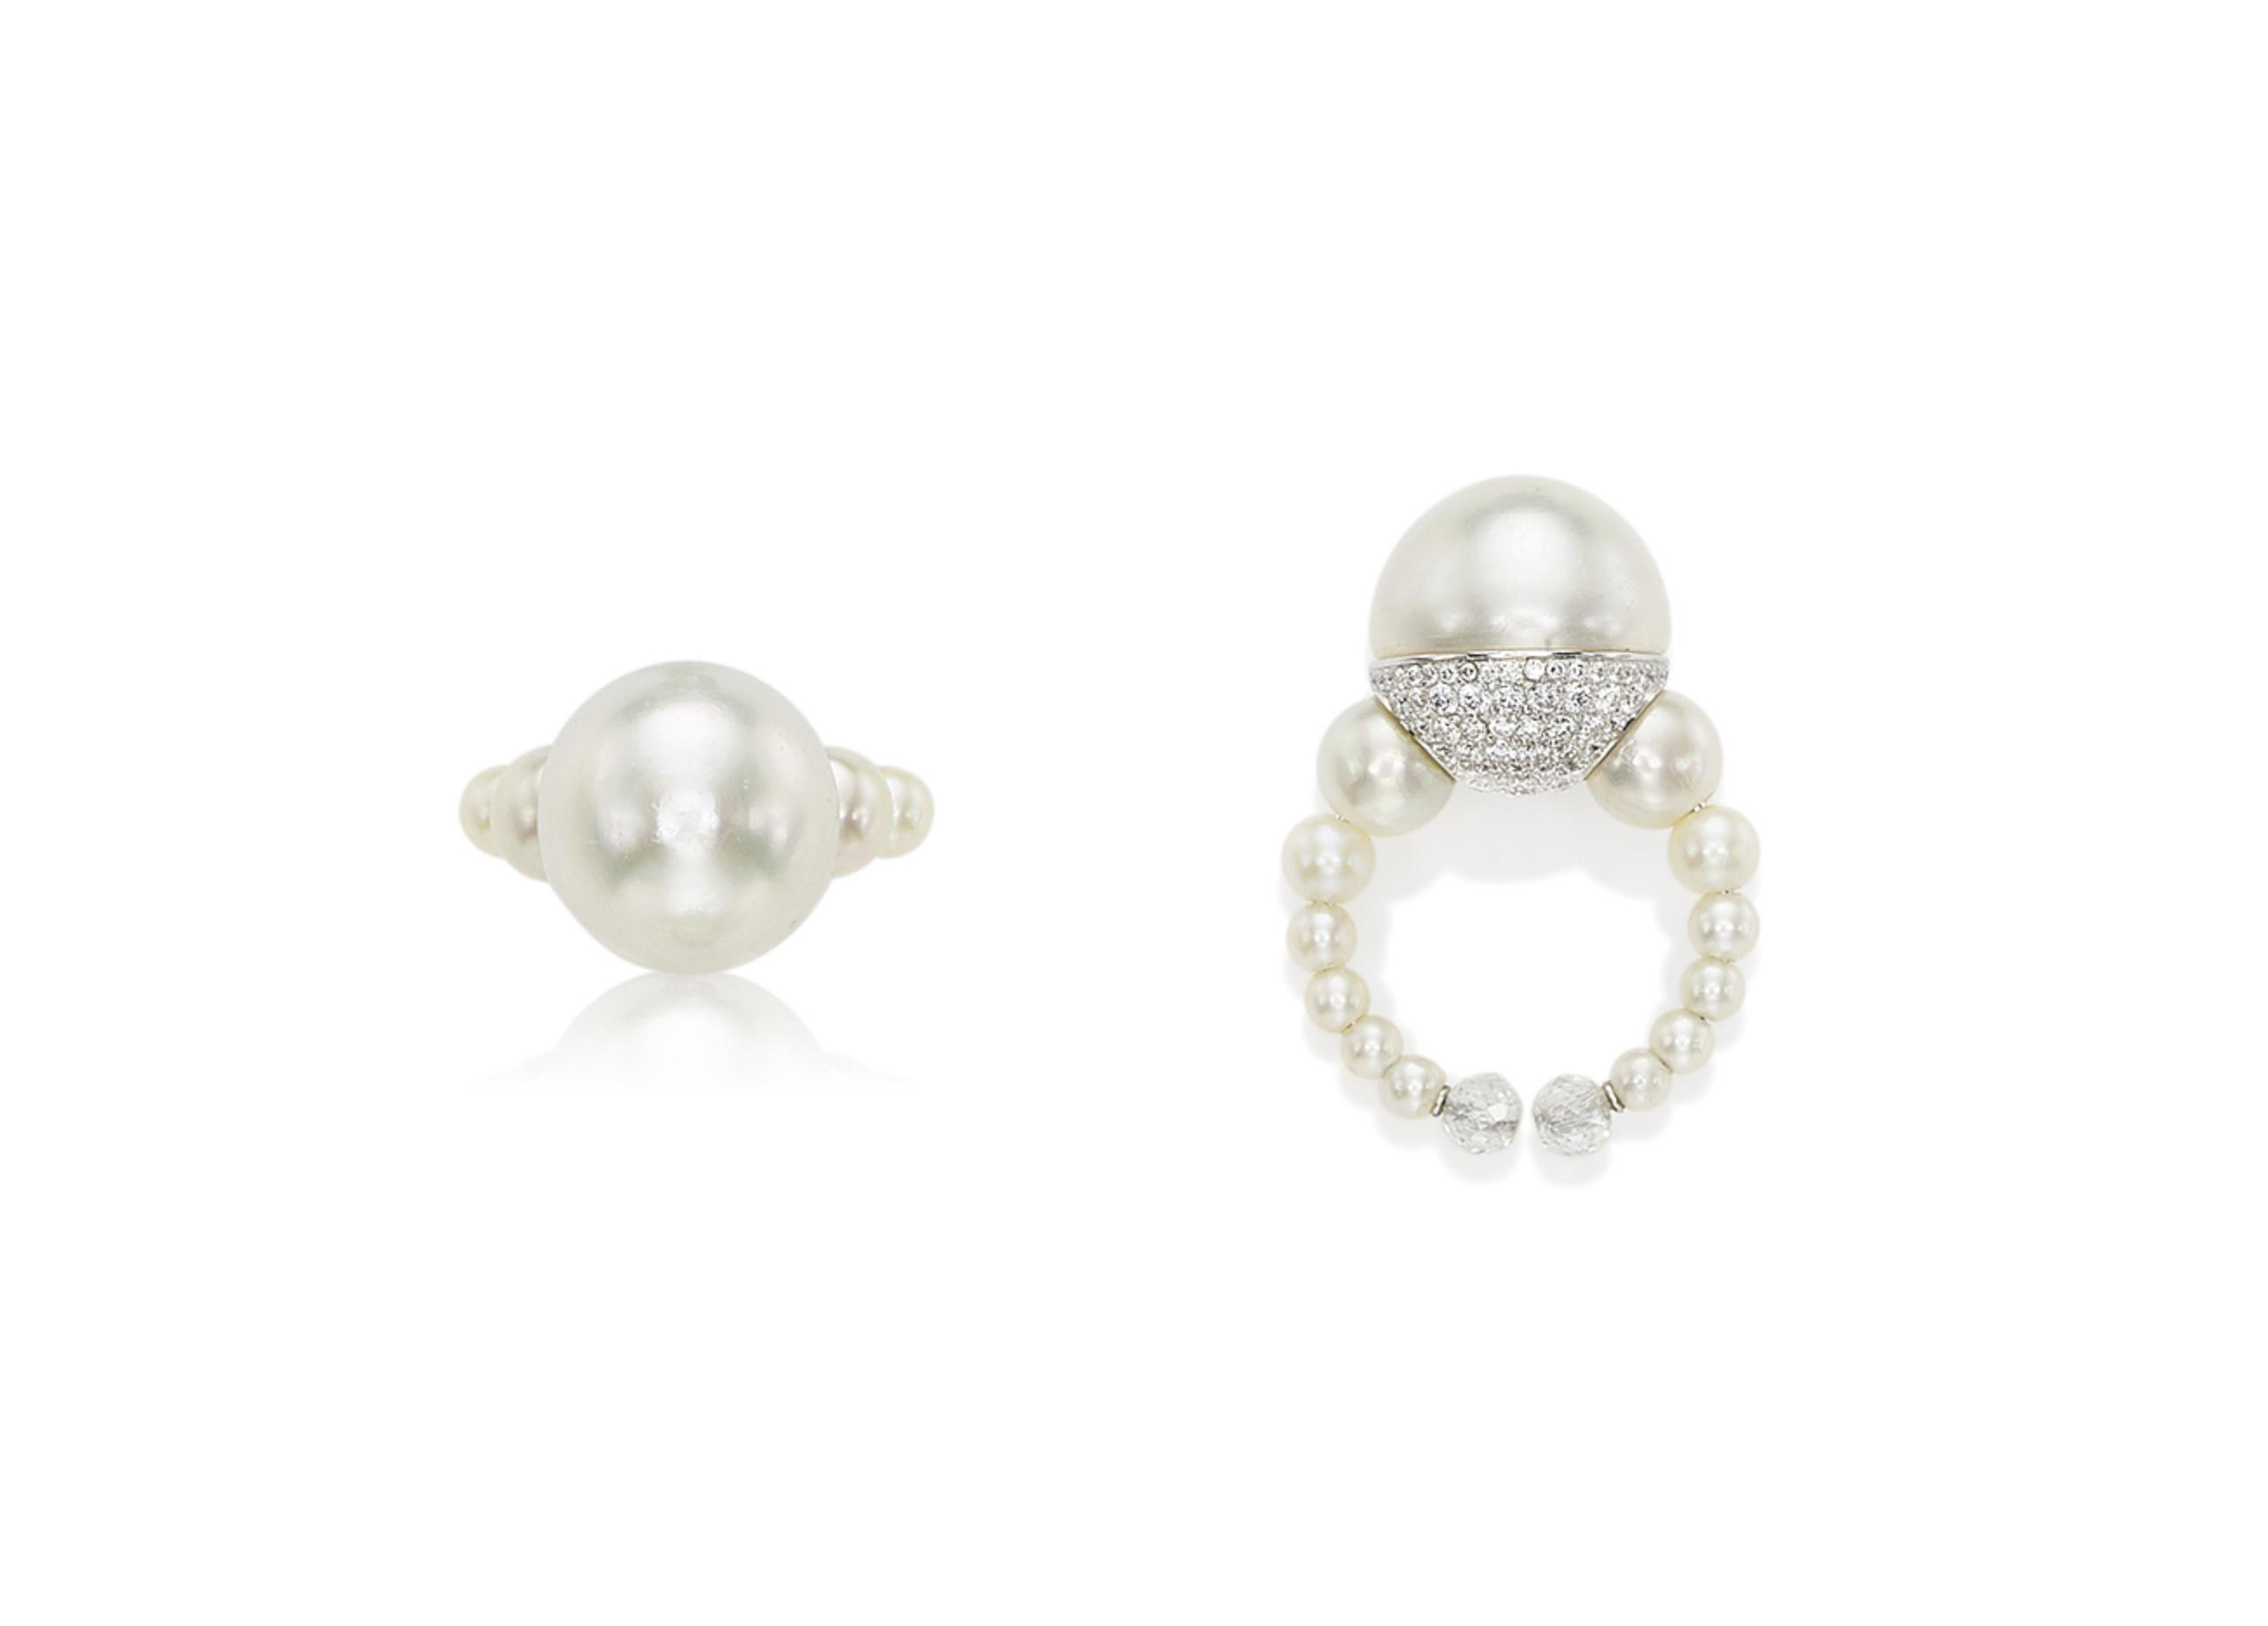 A PEARL, NATURAL PEARL AND DIAMOND RING, BY BHAGAT